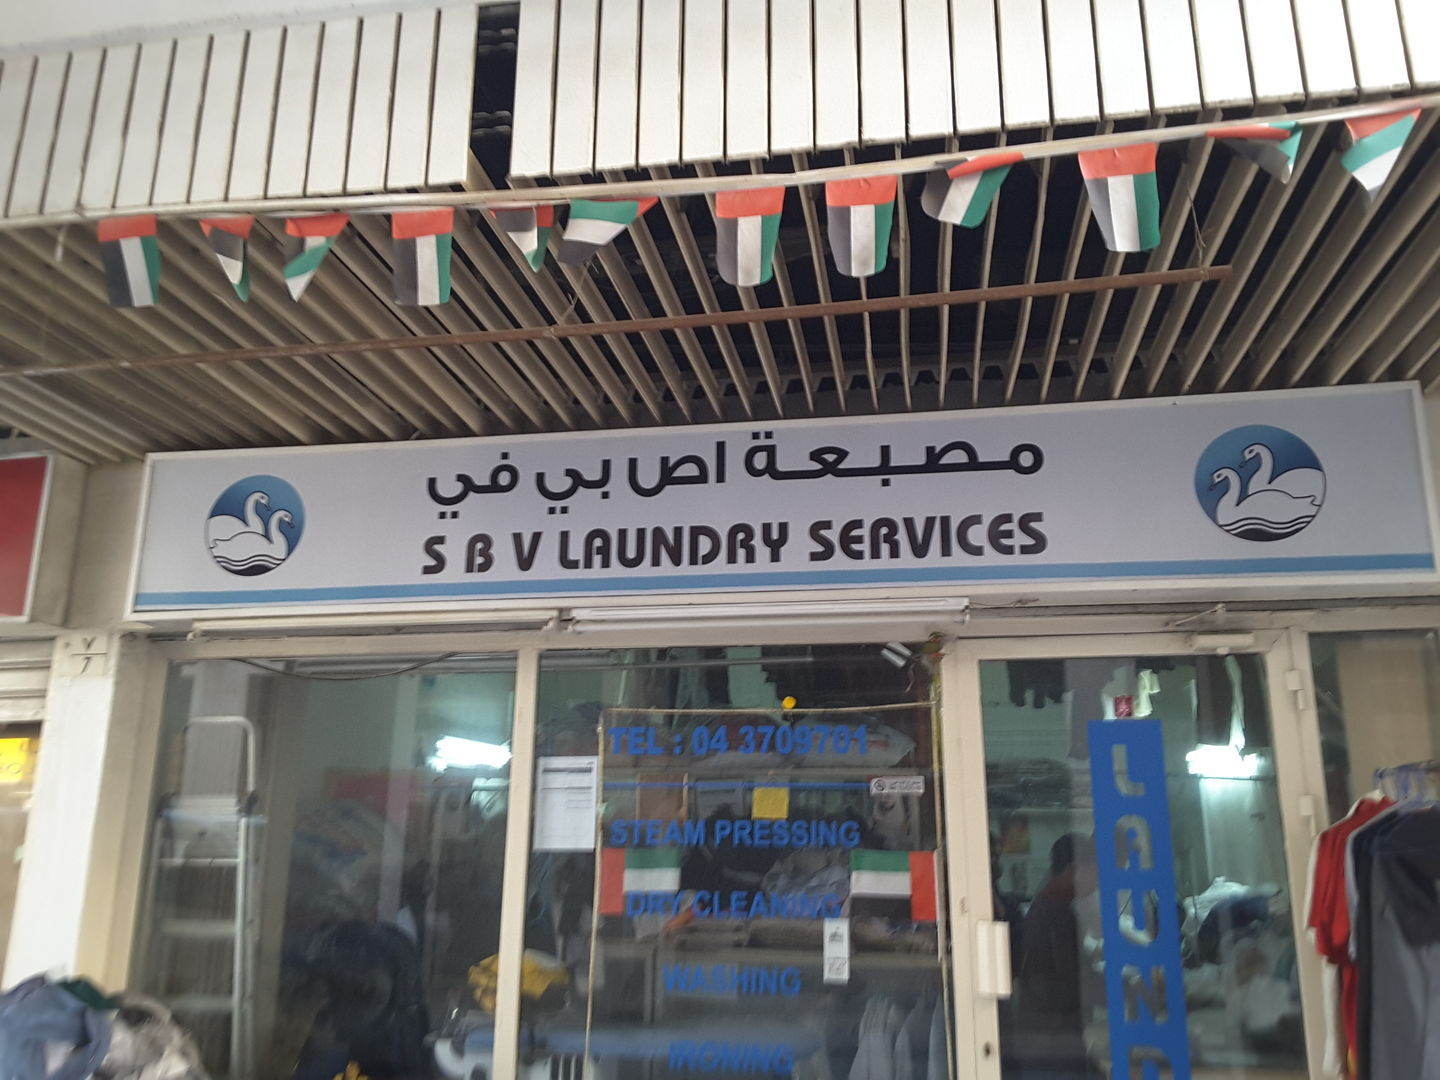 HiDubai-business-s-b-v-laundry-services-home-laundry-al-karama-dubai-2